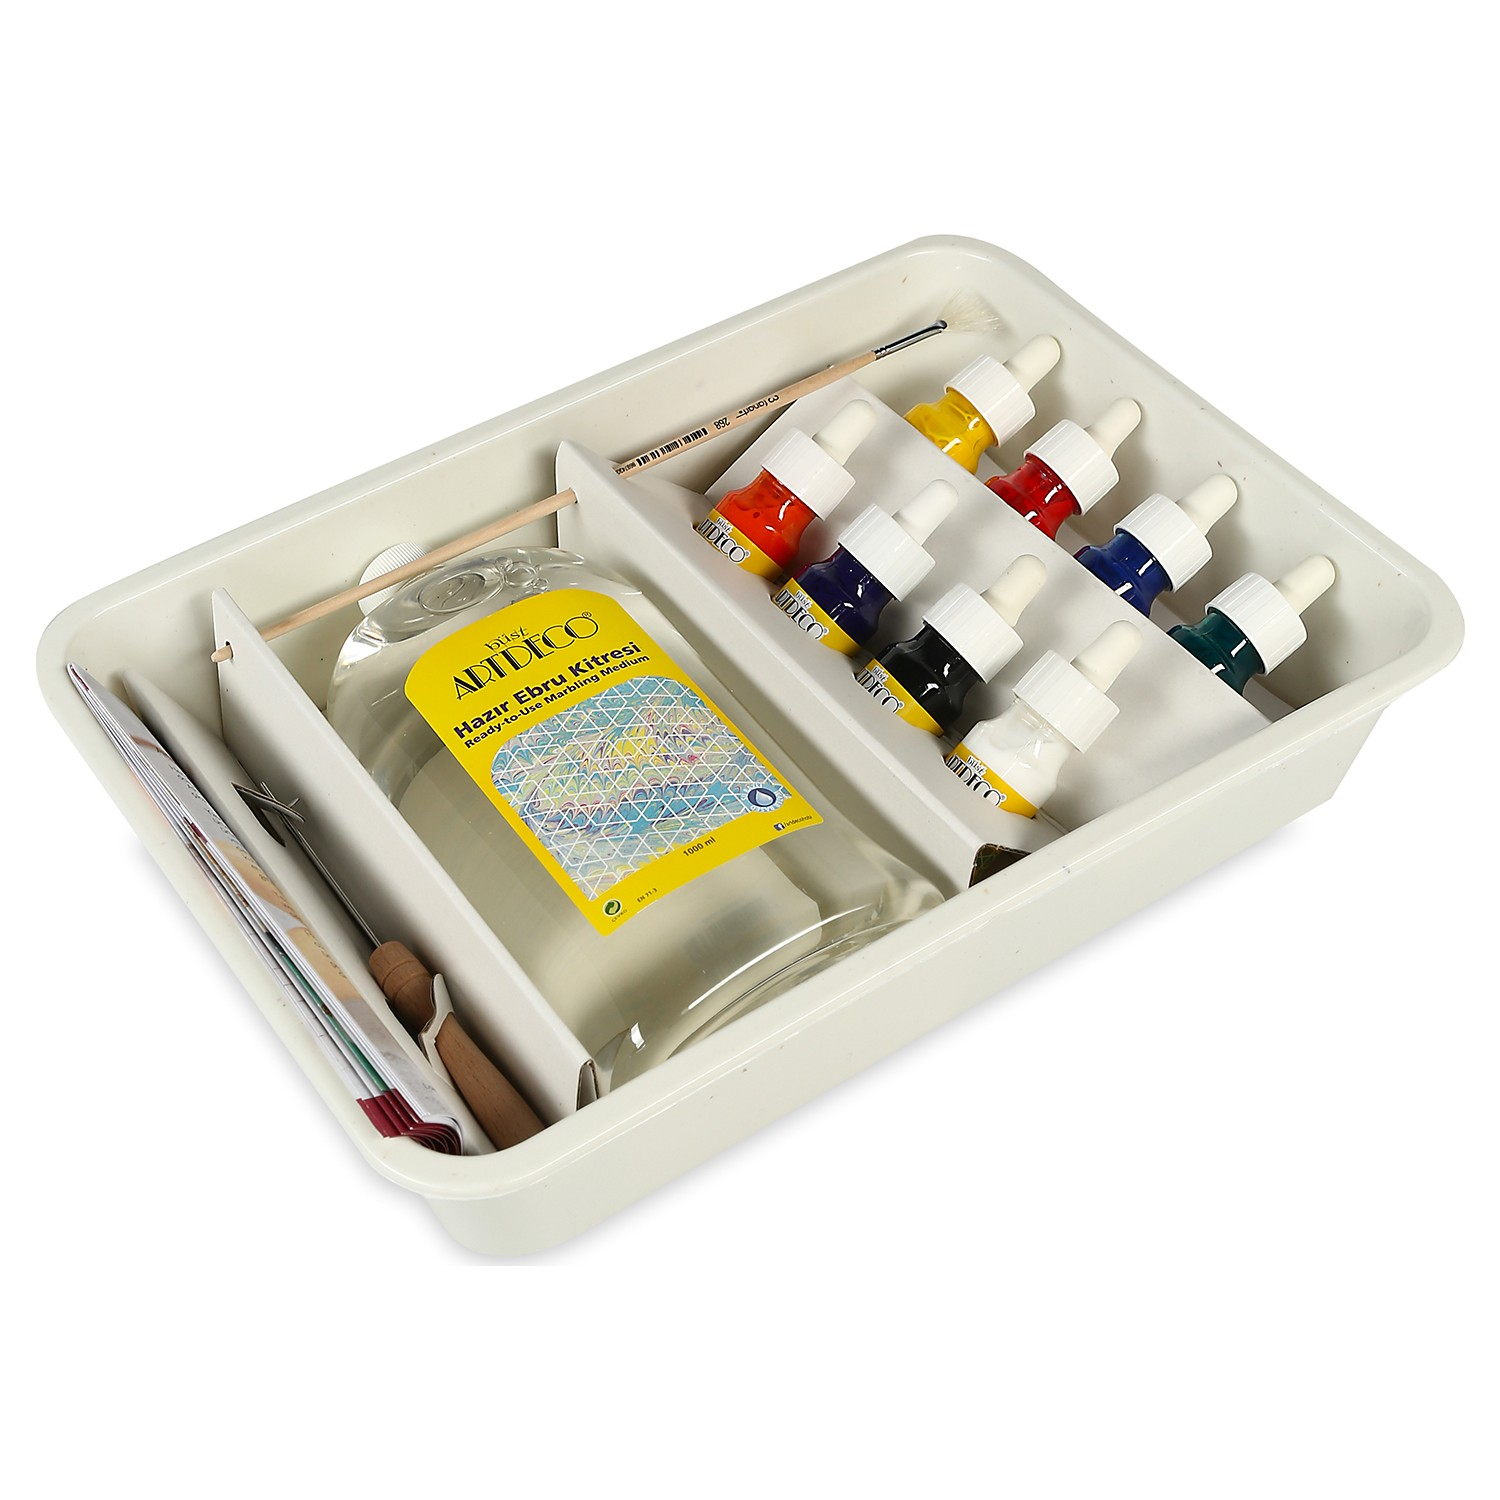 Artdeco Marbling Art Starter Set 8 Color Everything You Need For Marbling in This Box Brush 1 Piece Paint 30 ml 8 Colors